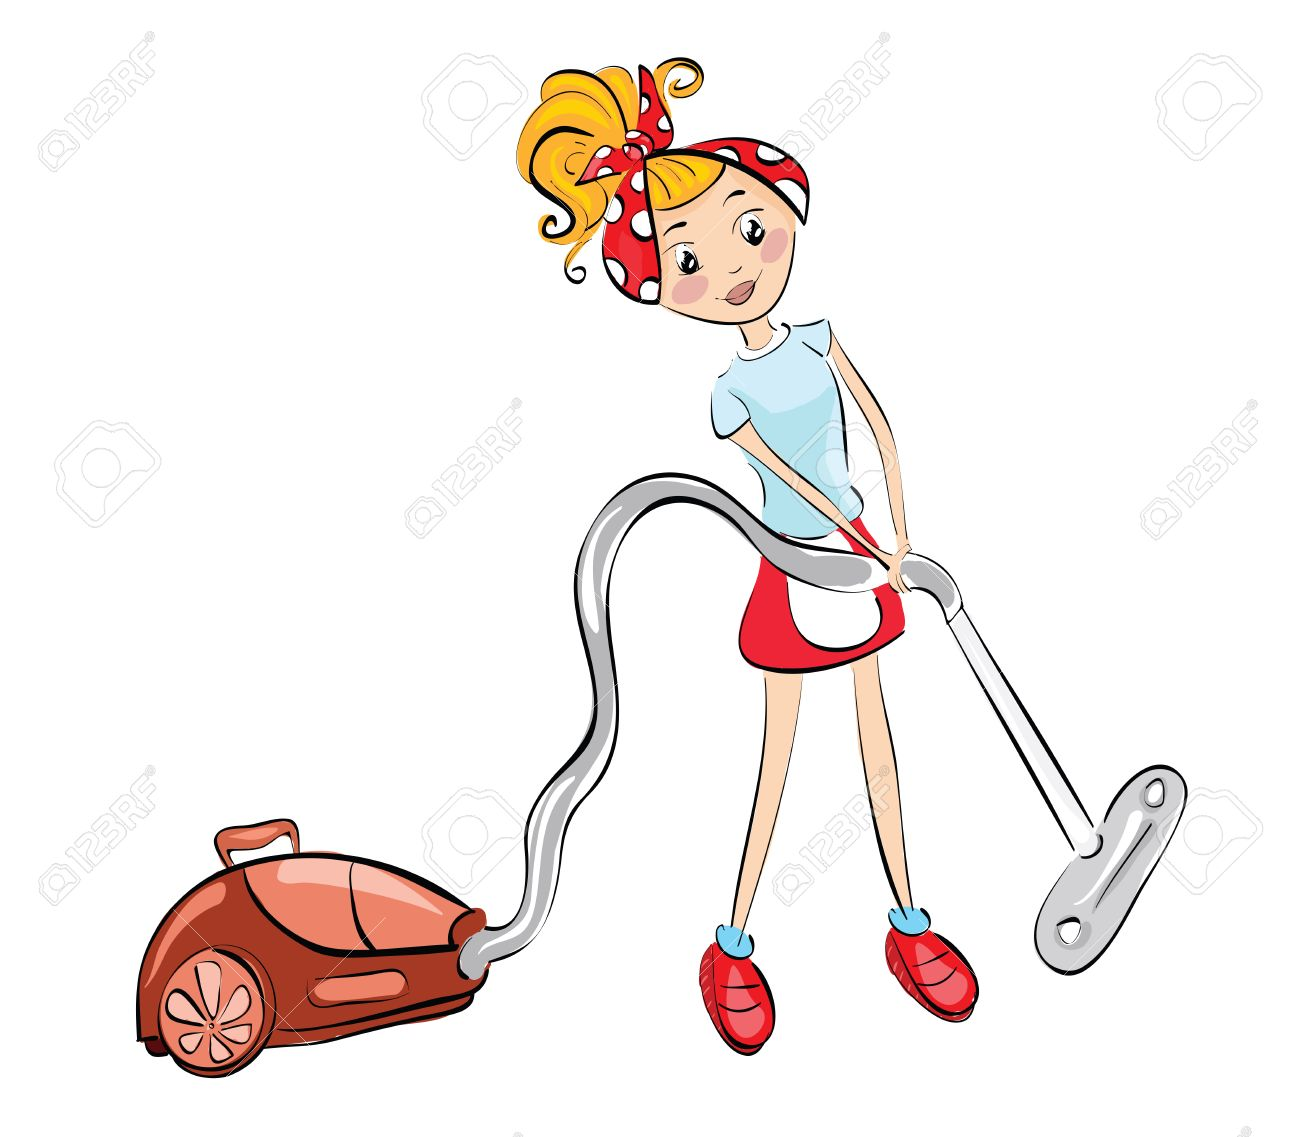 Vacuum cleaner clipart vacuum cleaner clip art - Vacuum Cleaner Clip Art